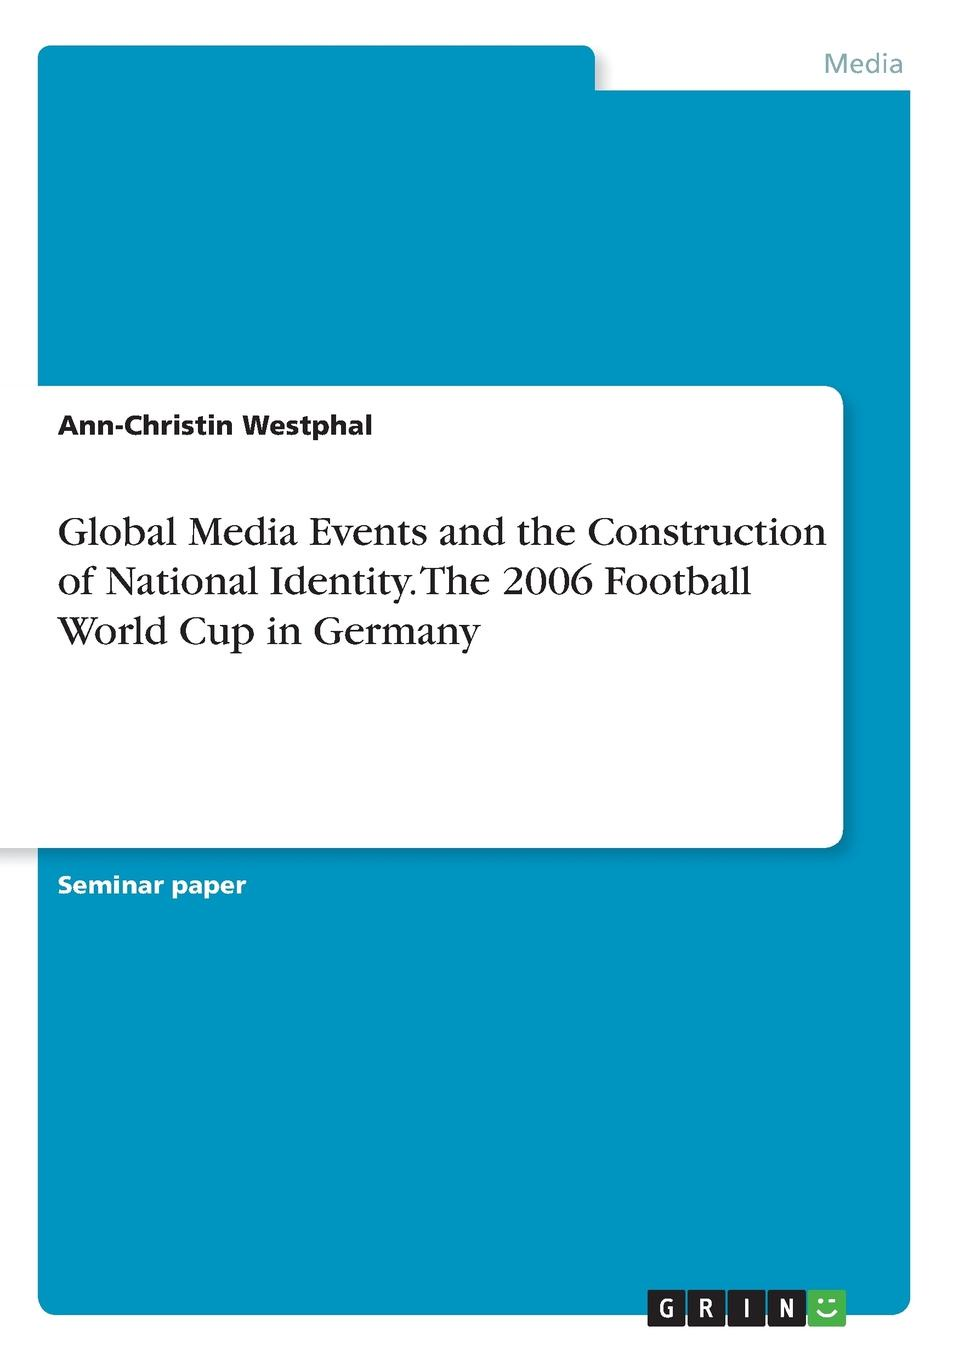 Ann-Christin Westphal Global Media Events and the Construction of National Identity. The 2006 Football World Cup in Germany nap national academy press the medical implications of nuclear war paper